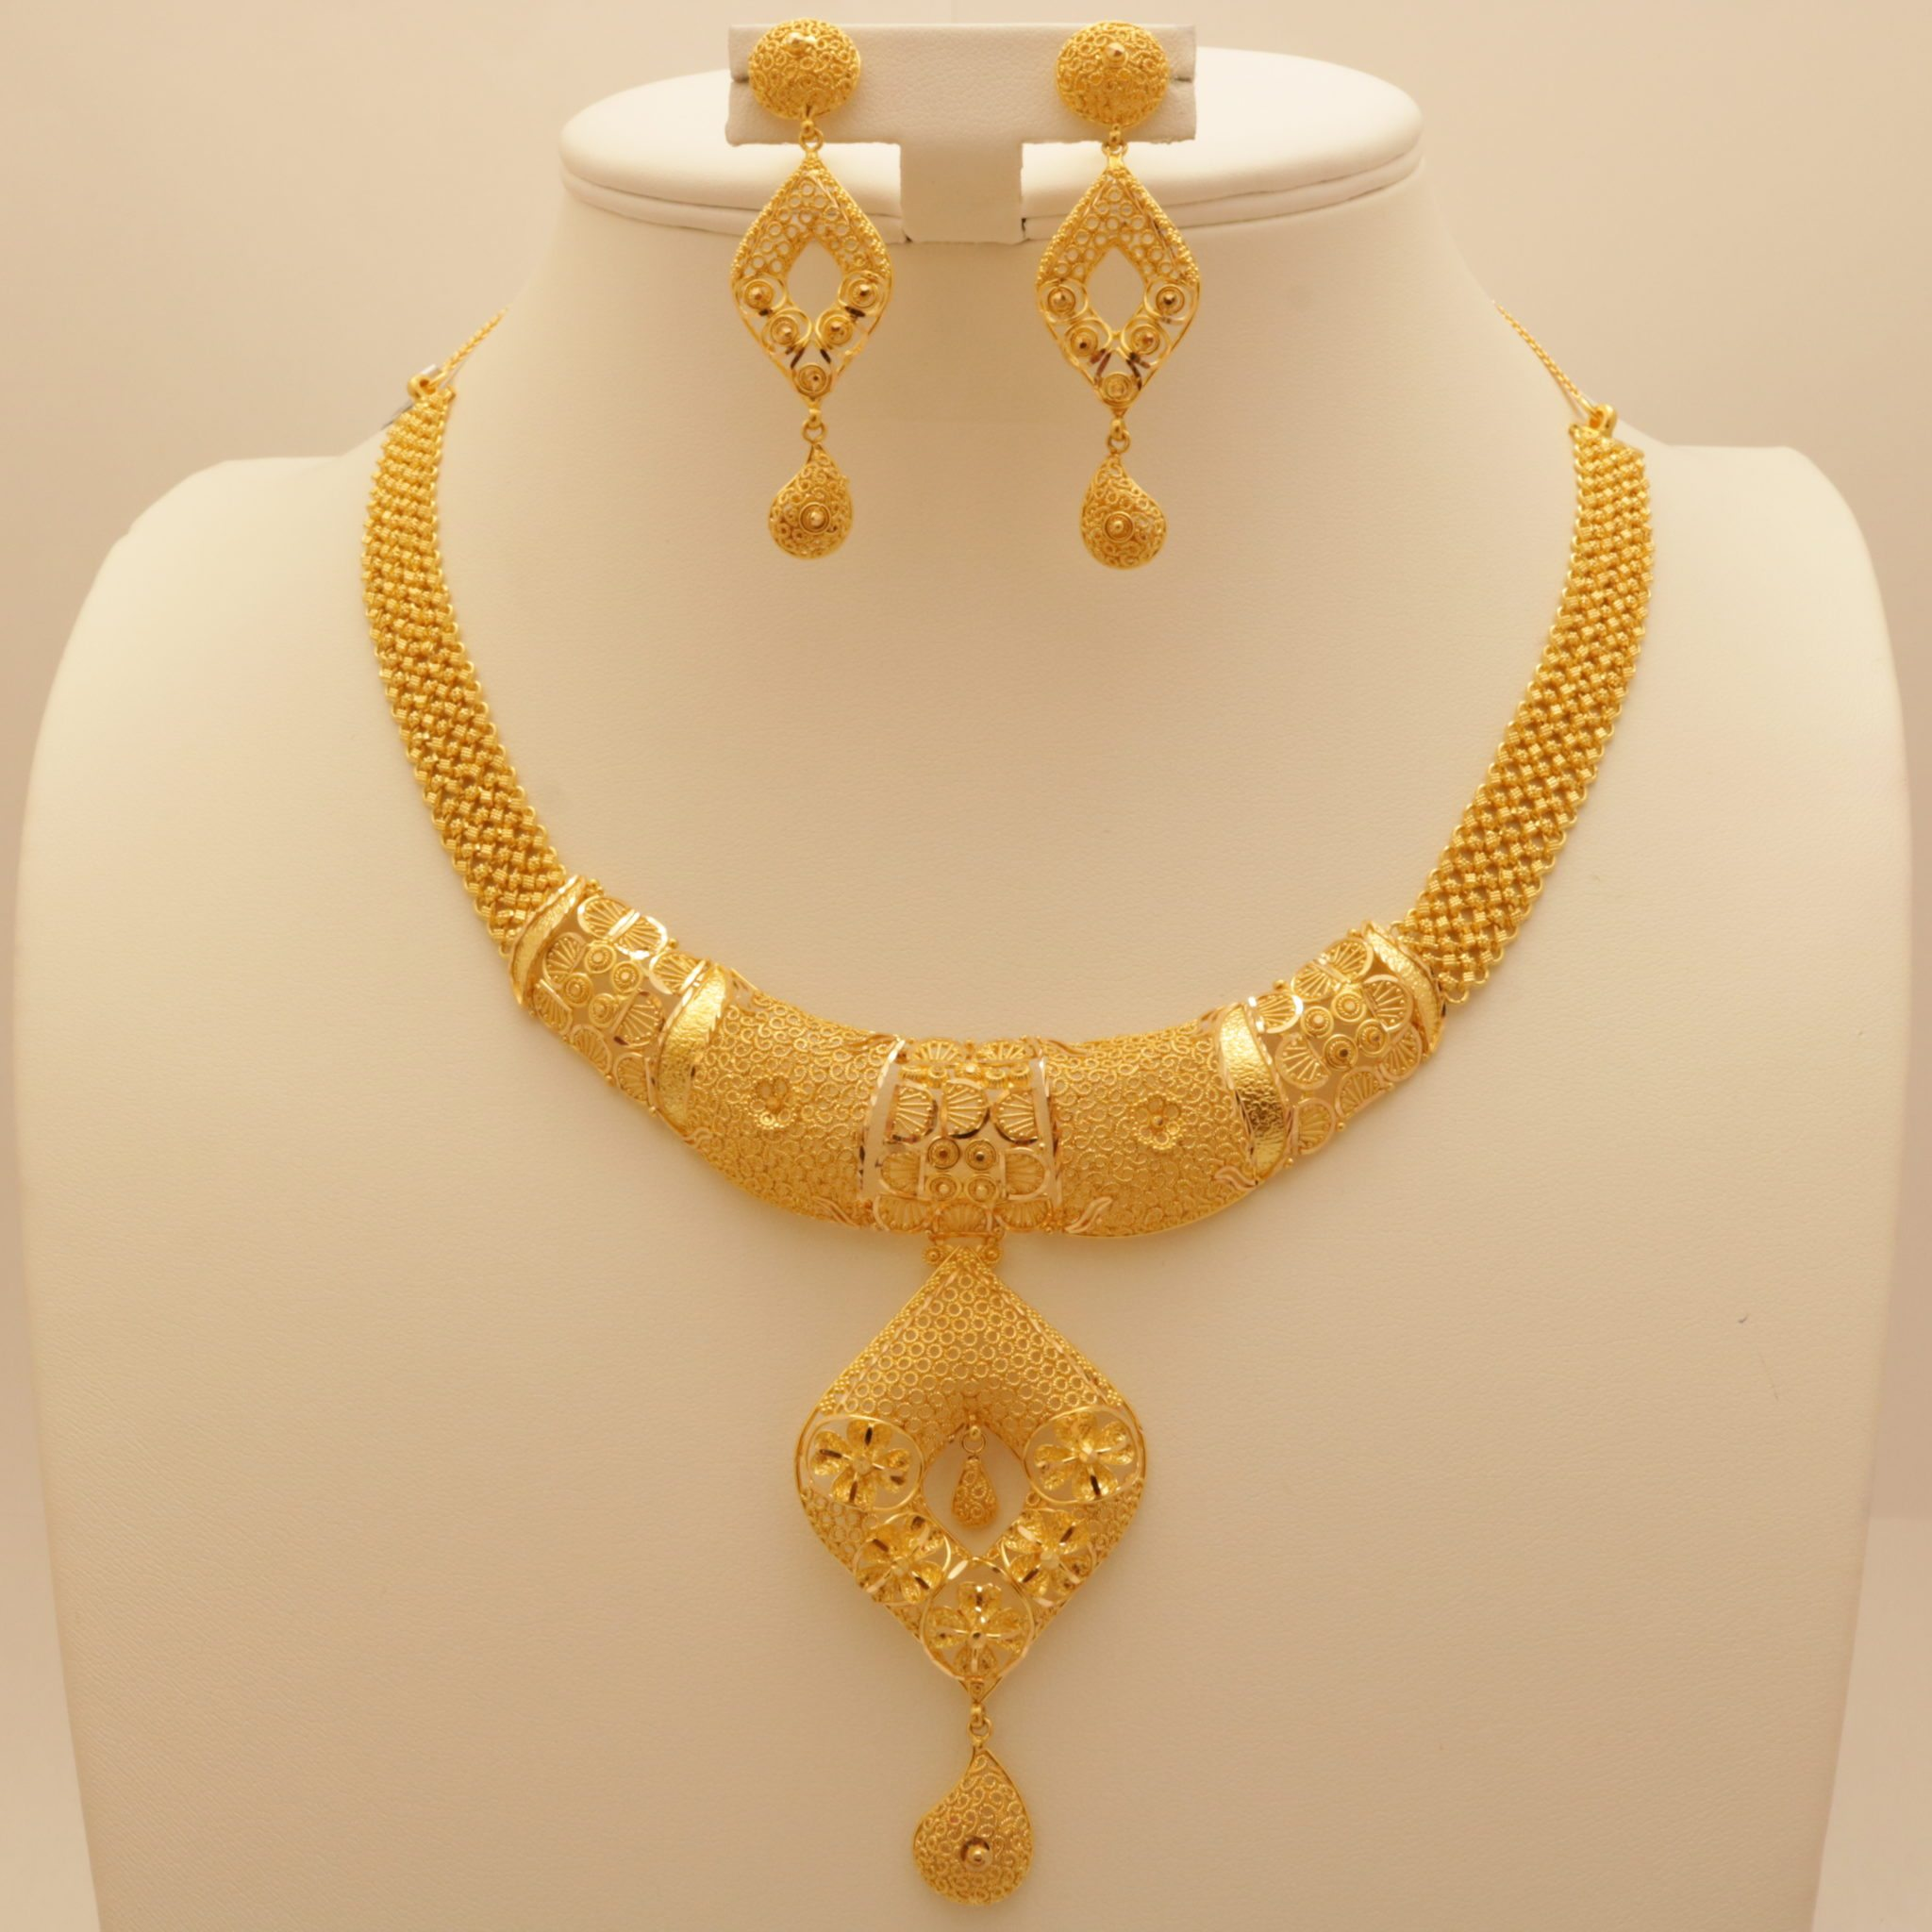 maitra necklace gold